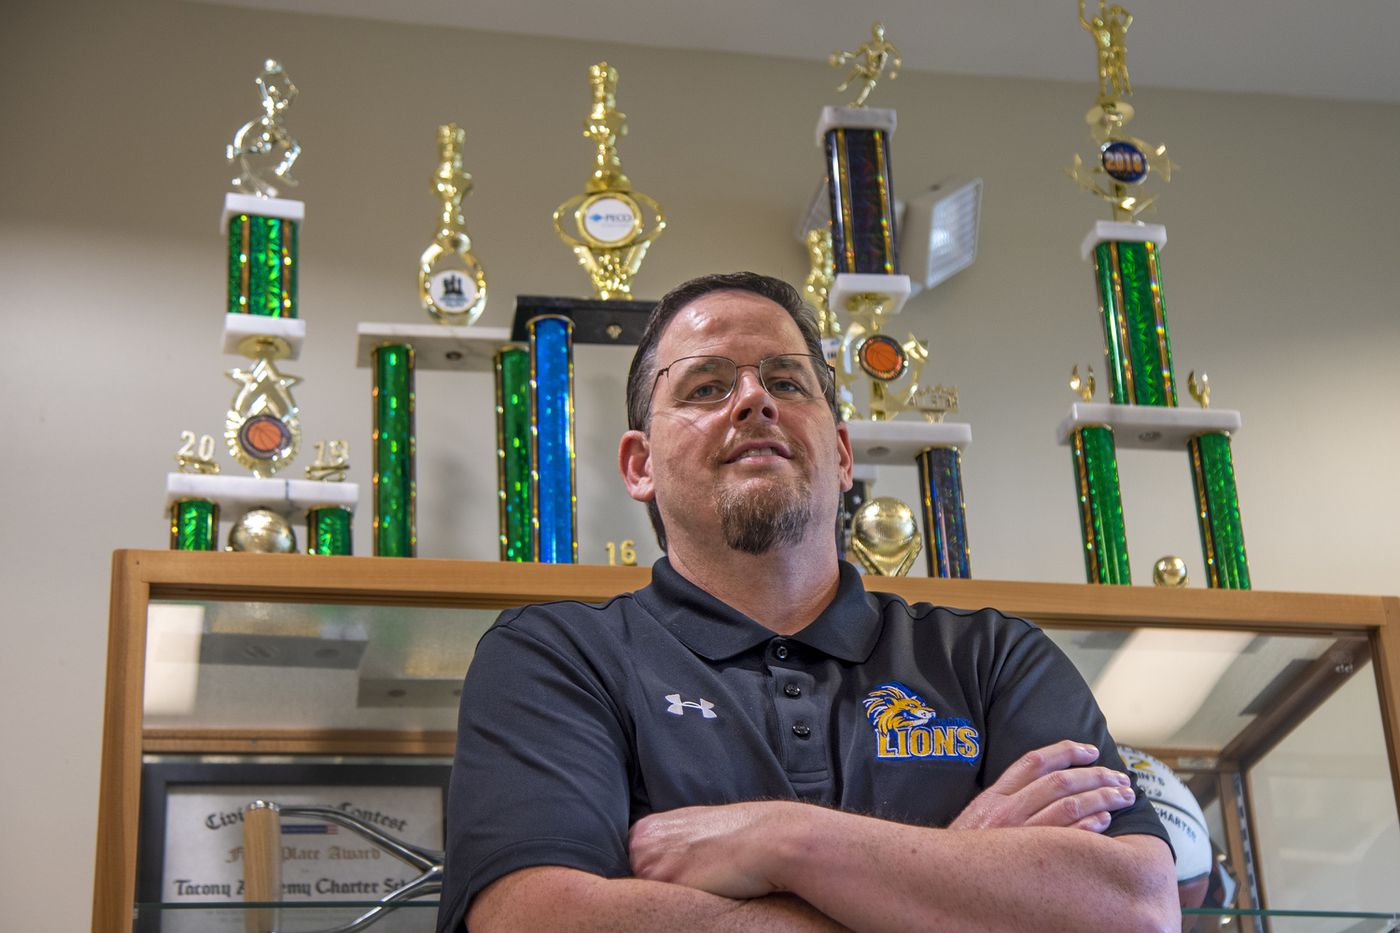 Athletic director Paul Rieser of Tacony Academy Charter helped the school become the first in the nation to achieve National Federation of High Schools Honor Roll Level 2, as more than 90 percent of the staff completed coaching education classes online through the NFHS program.